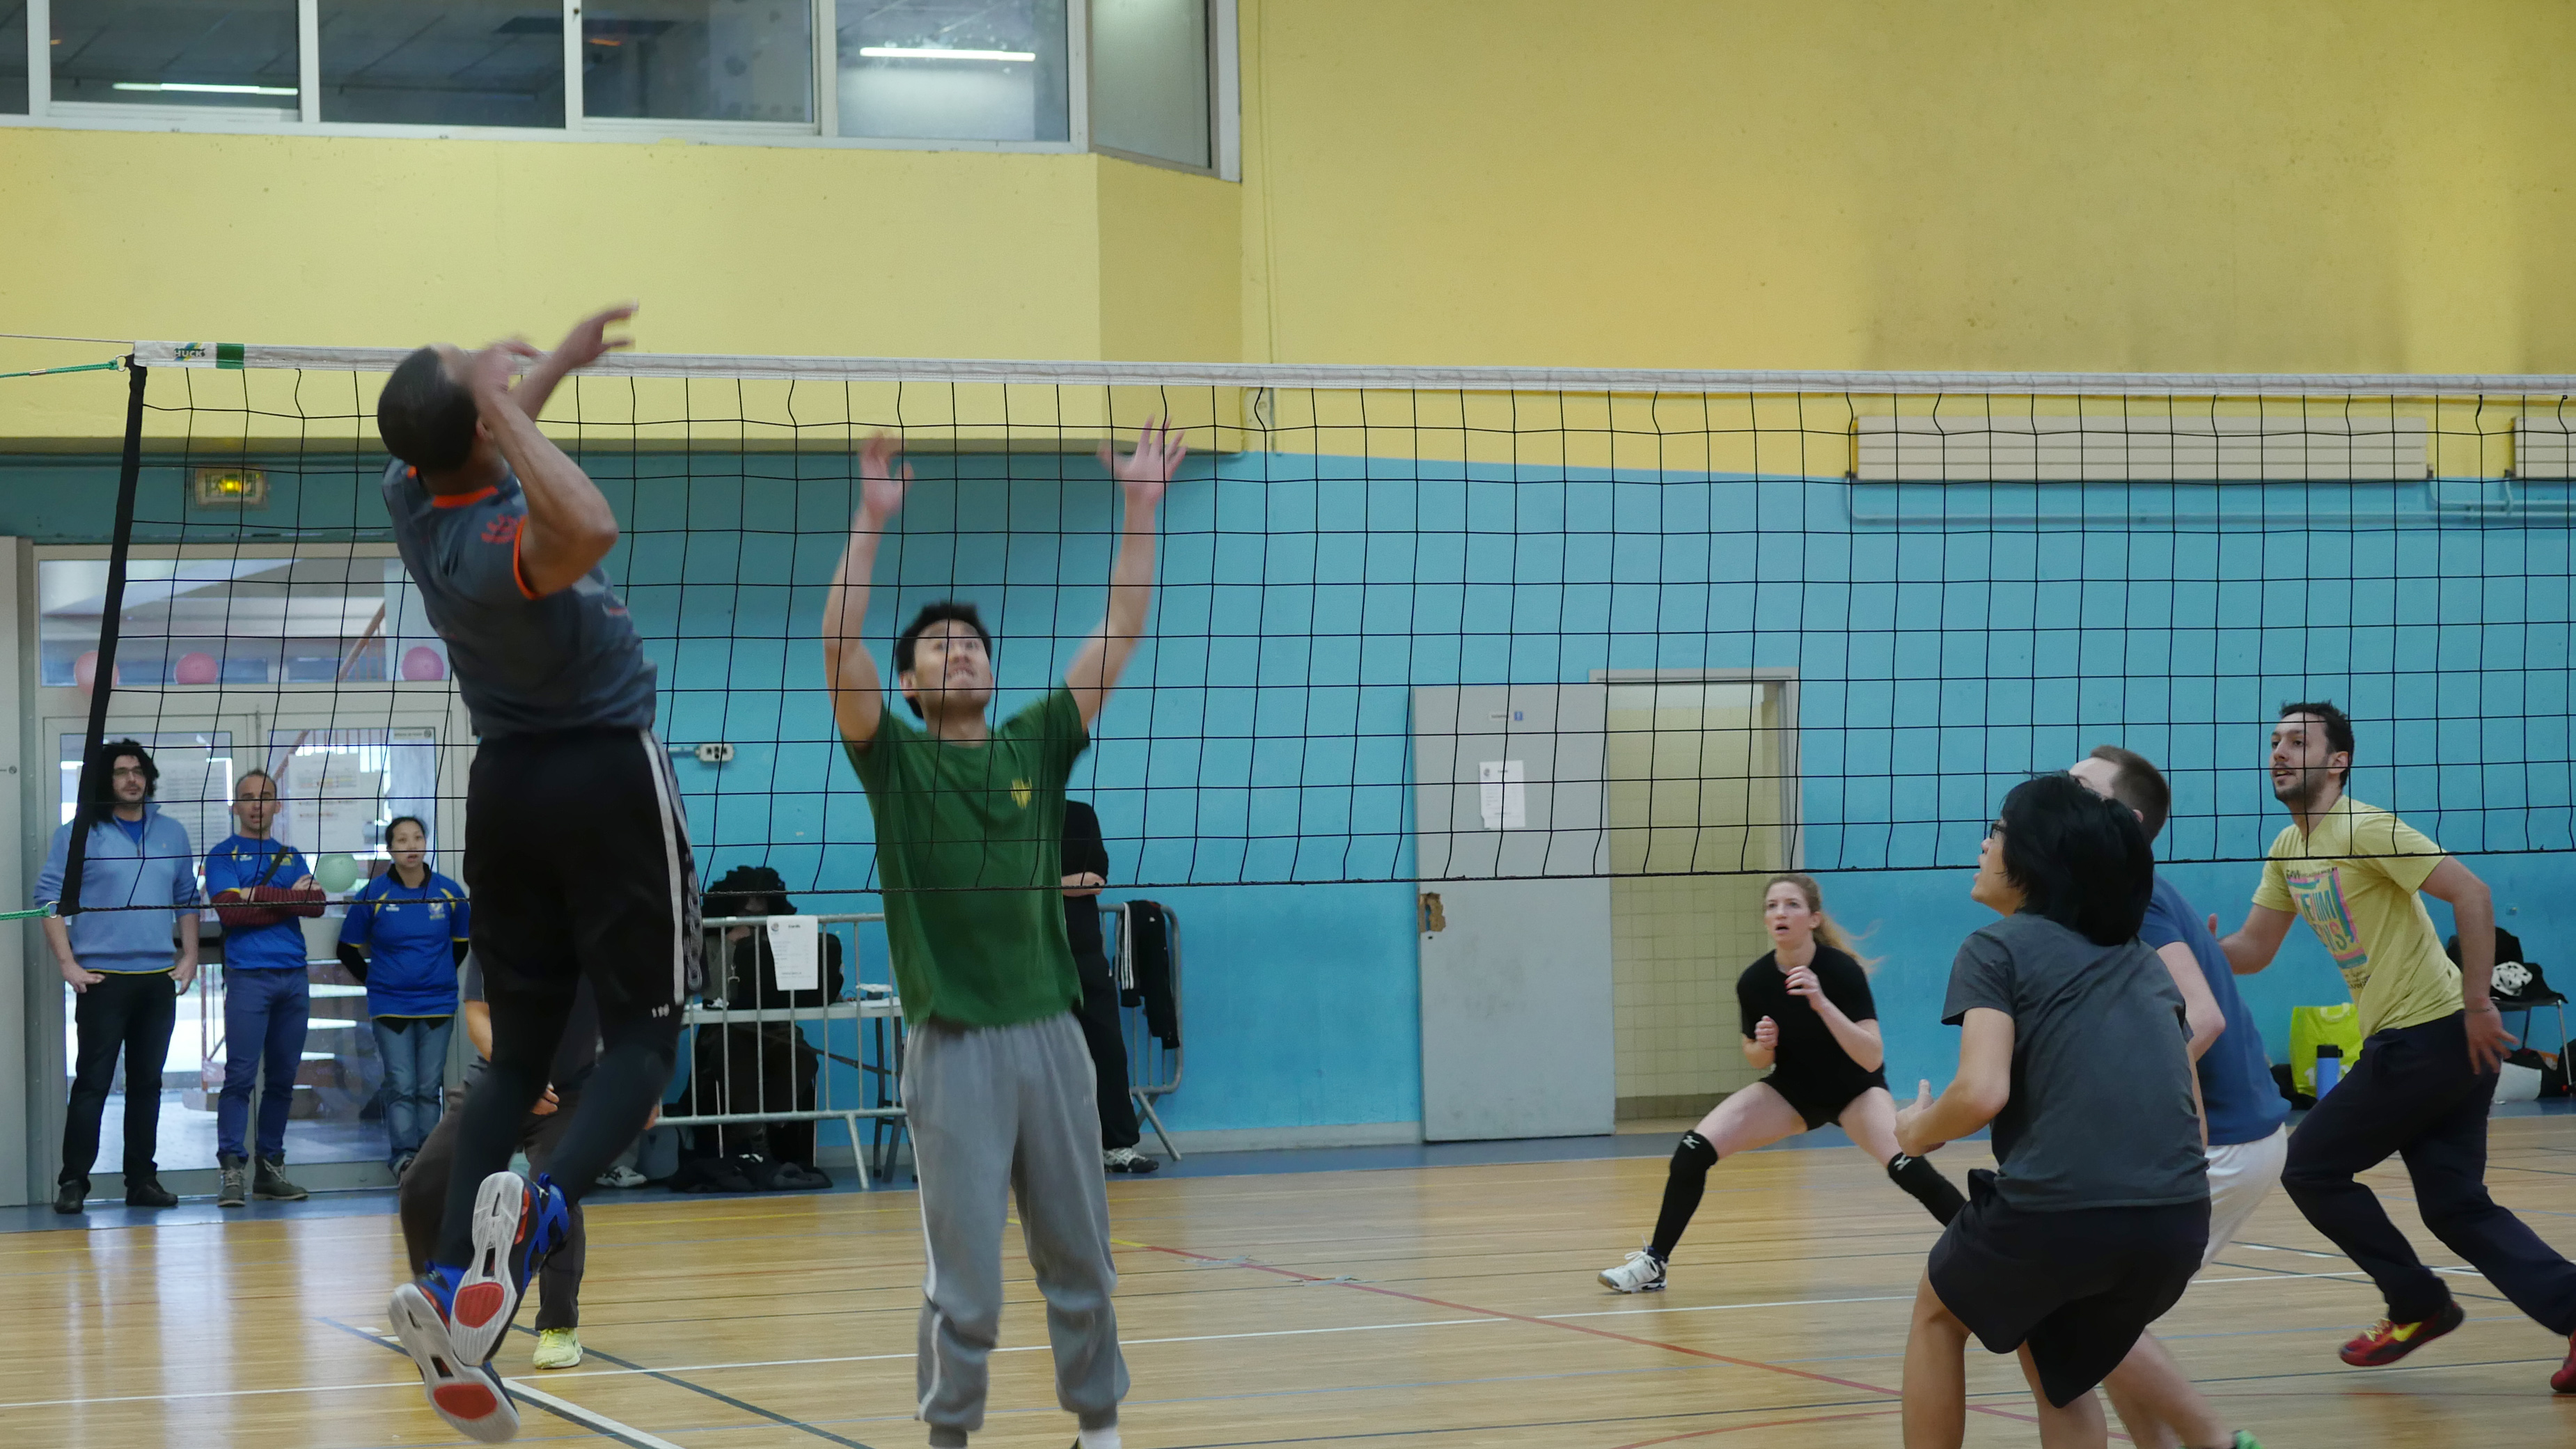 Tournoi Volley USMA 2015-43.JPG